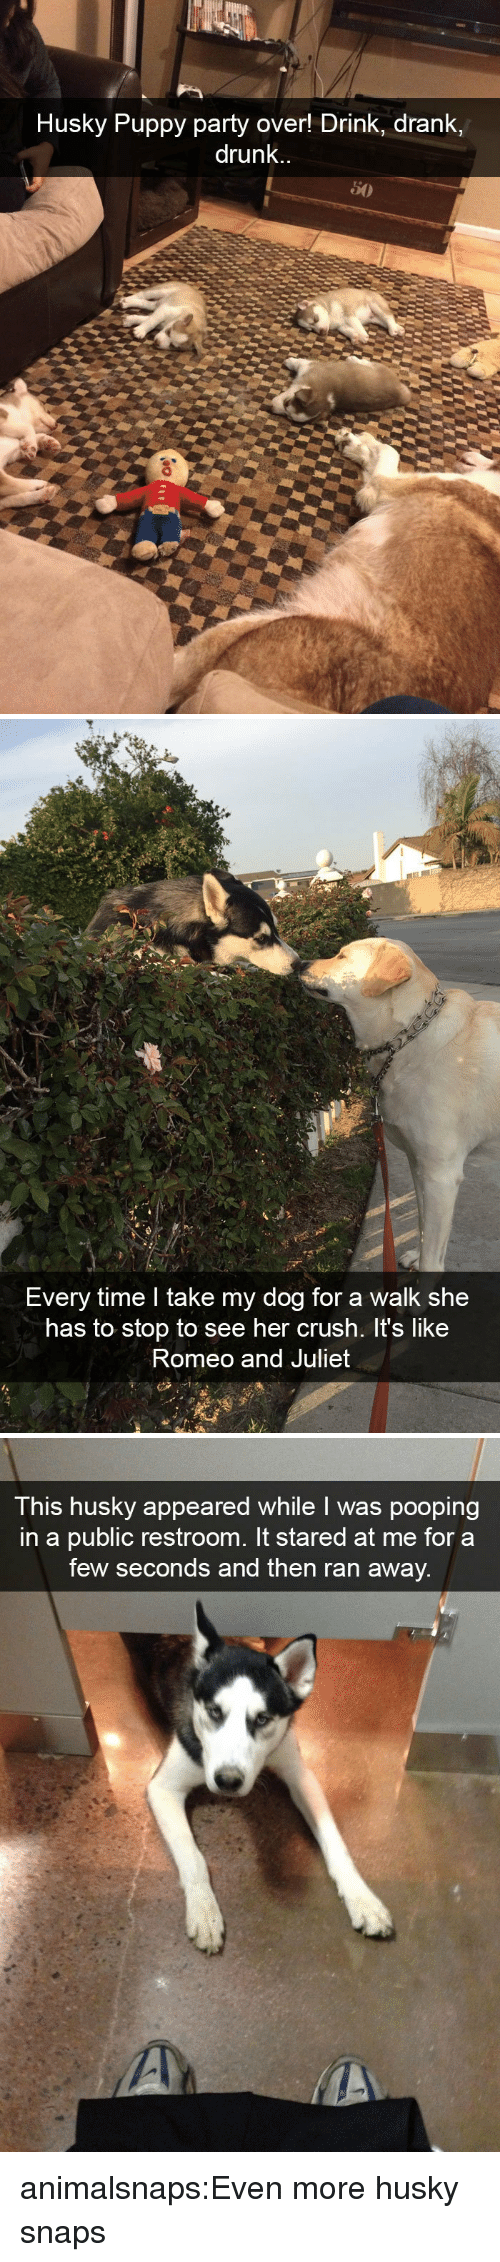 juliet: Husky Puppy party over! Drink, drank,  drunk.   Every time I take my dog for a walk she  has to stop to see her crush. It's like  Romeo and Juliet   This husky appeared while I was pooping  in a public restroom. It stared at me for a  few seconds and then ran away. animalsnaps:Even more husky snaps